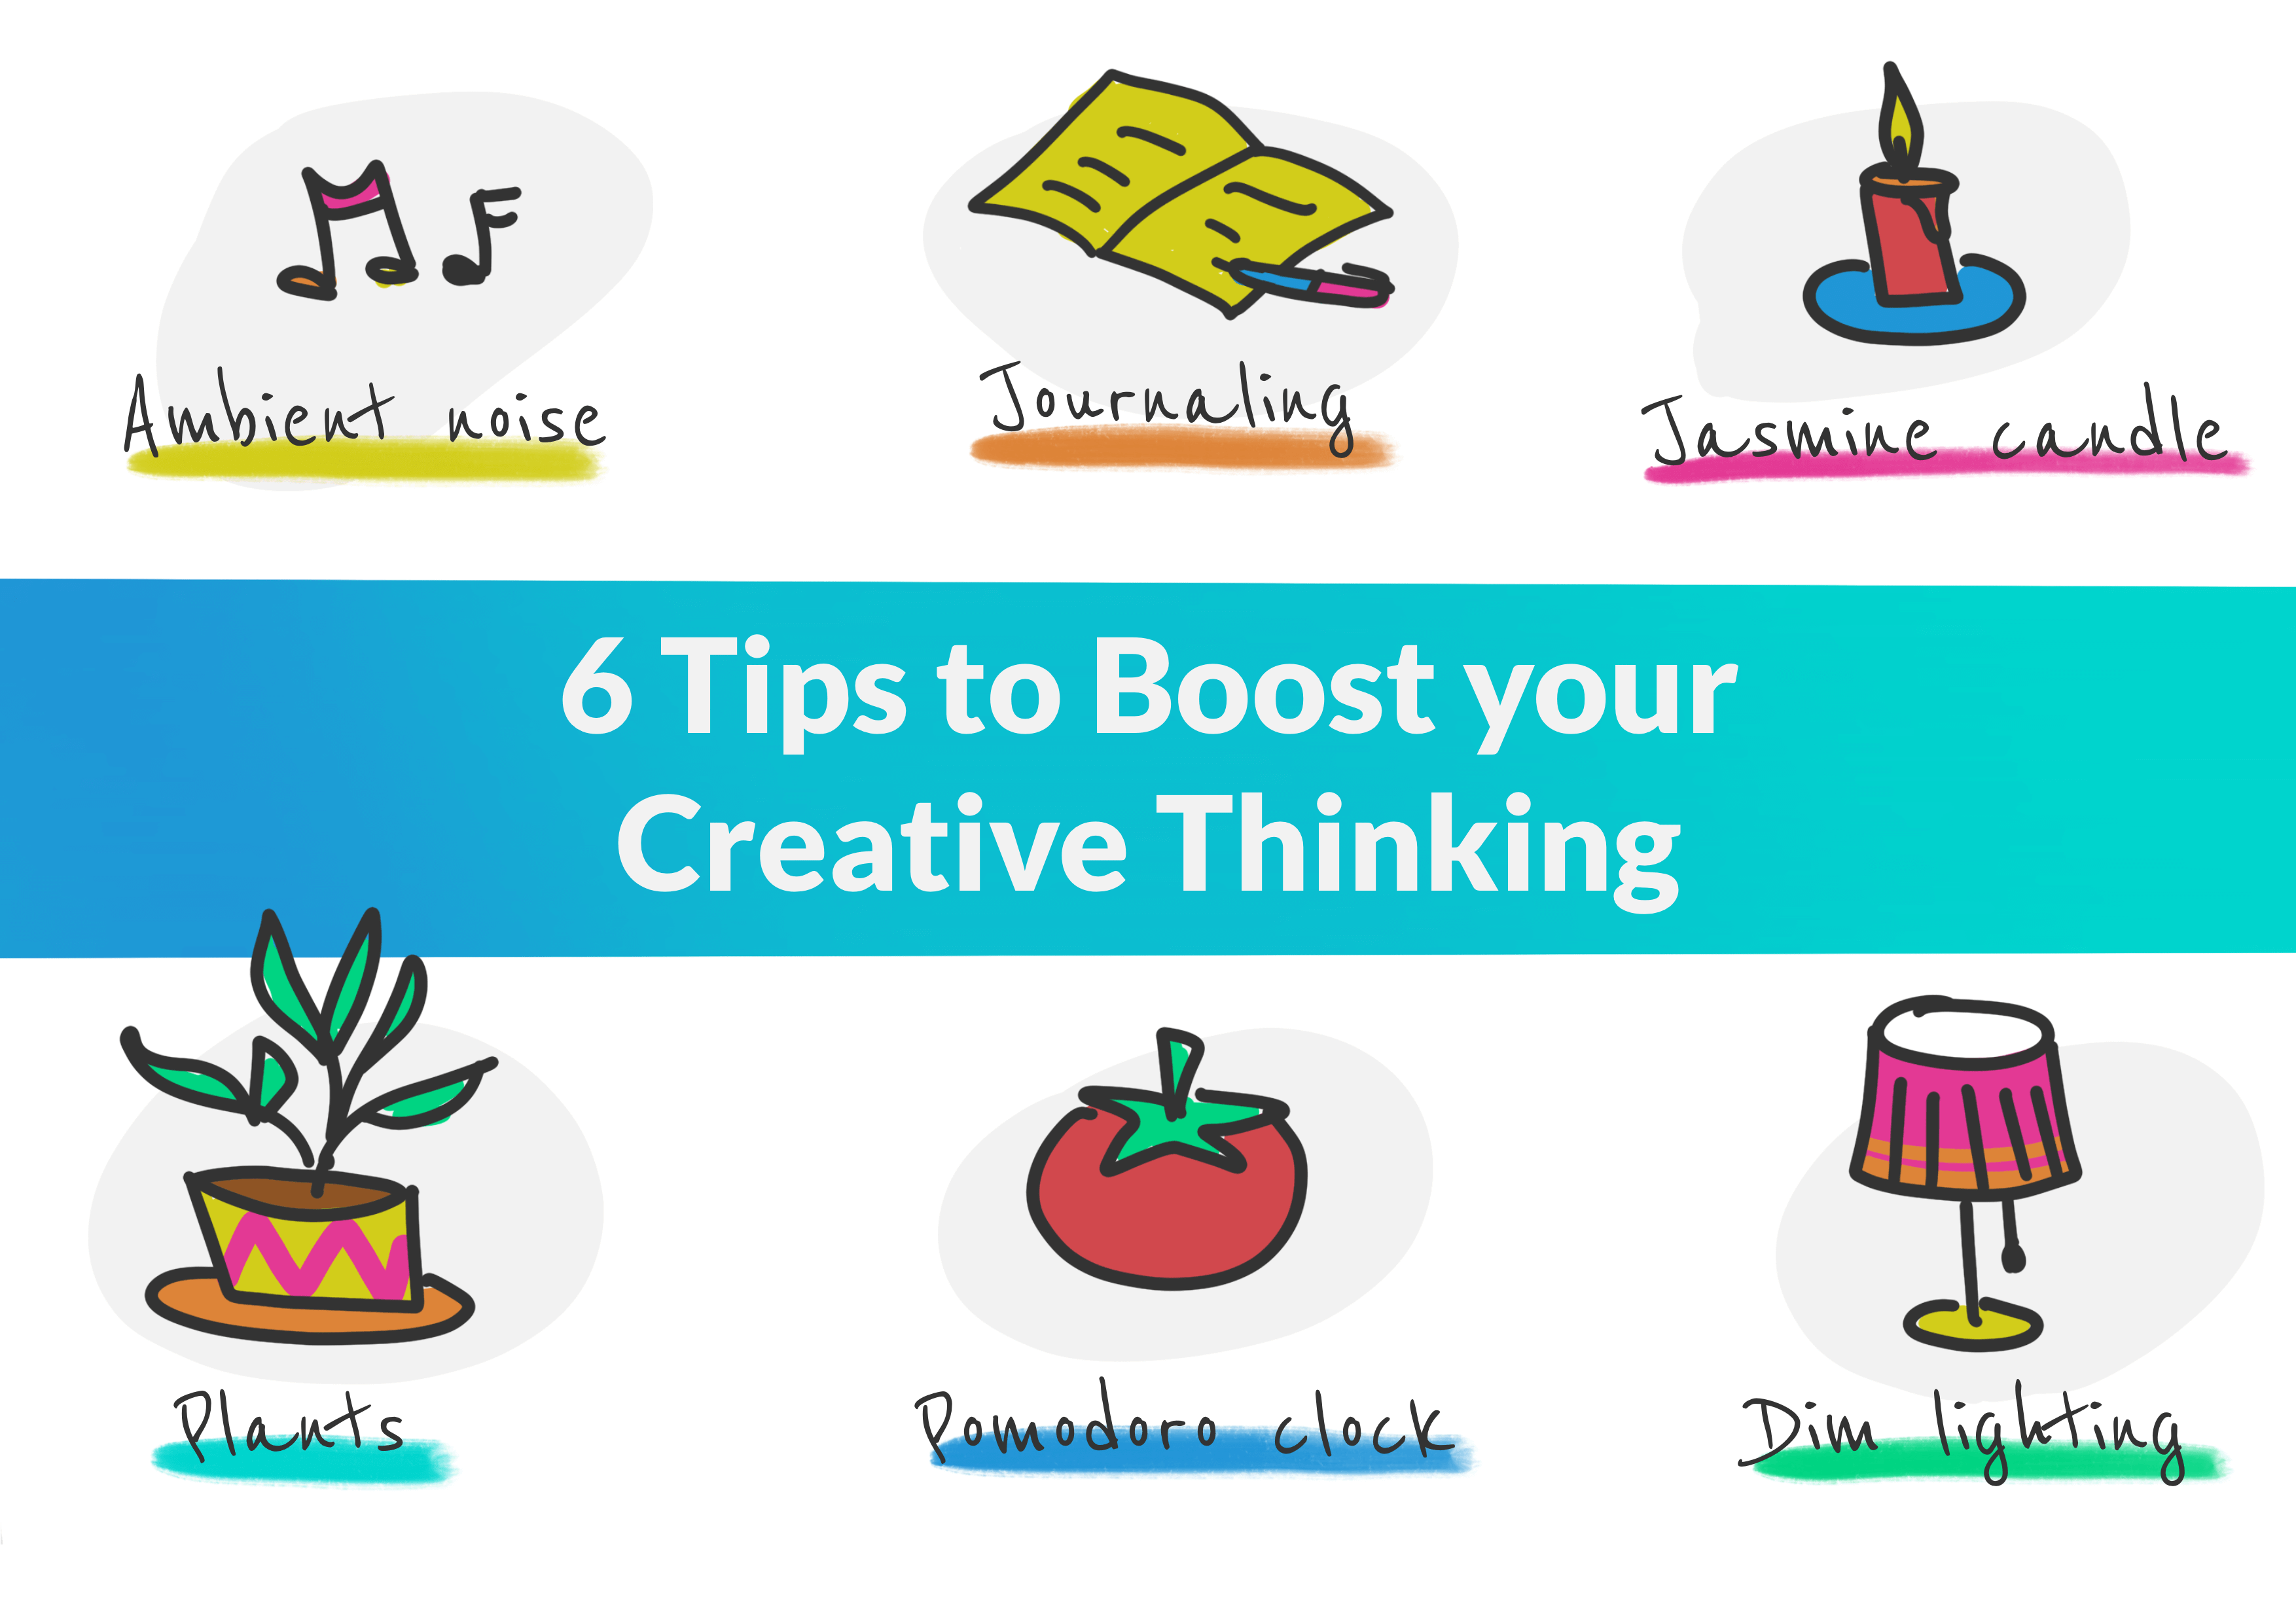 Tips to boost your creative thinking with low budget